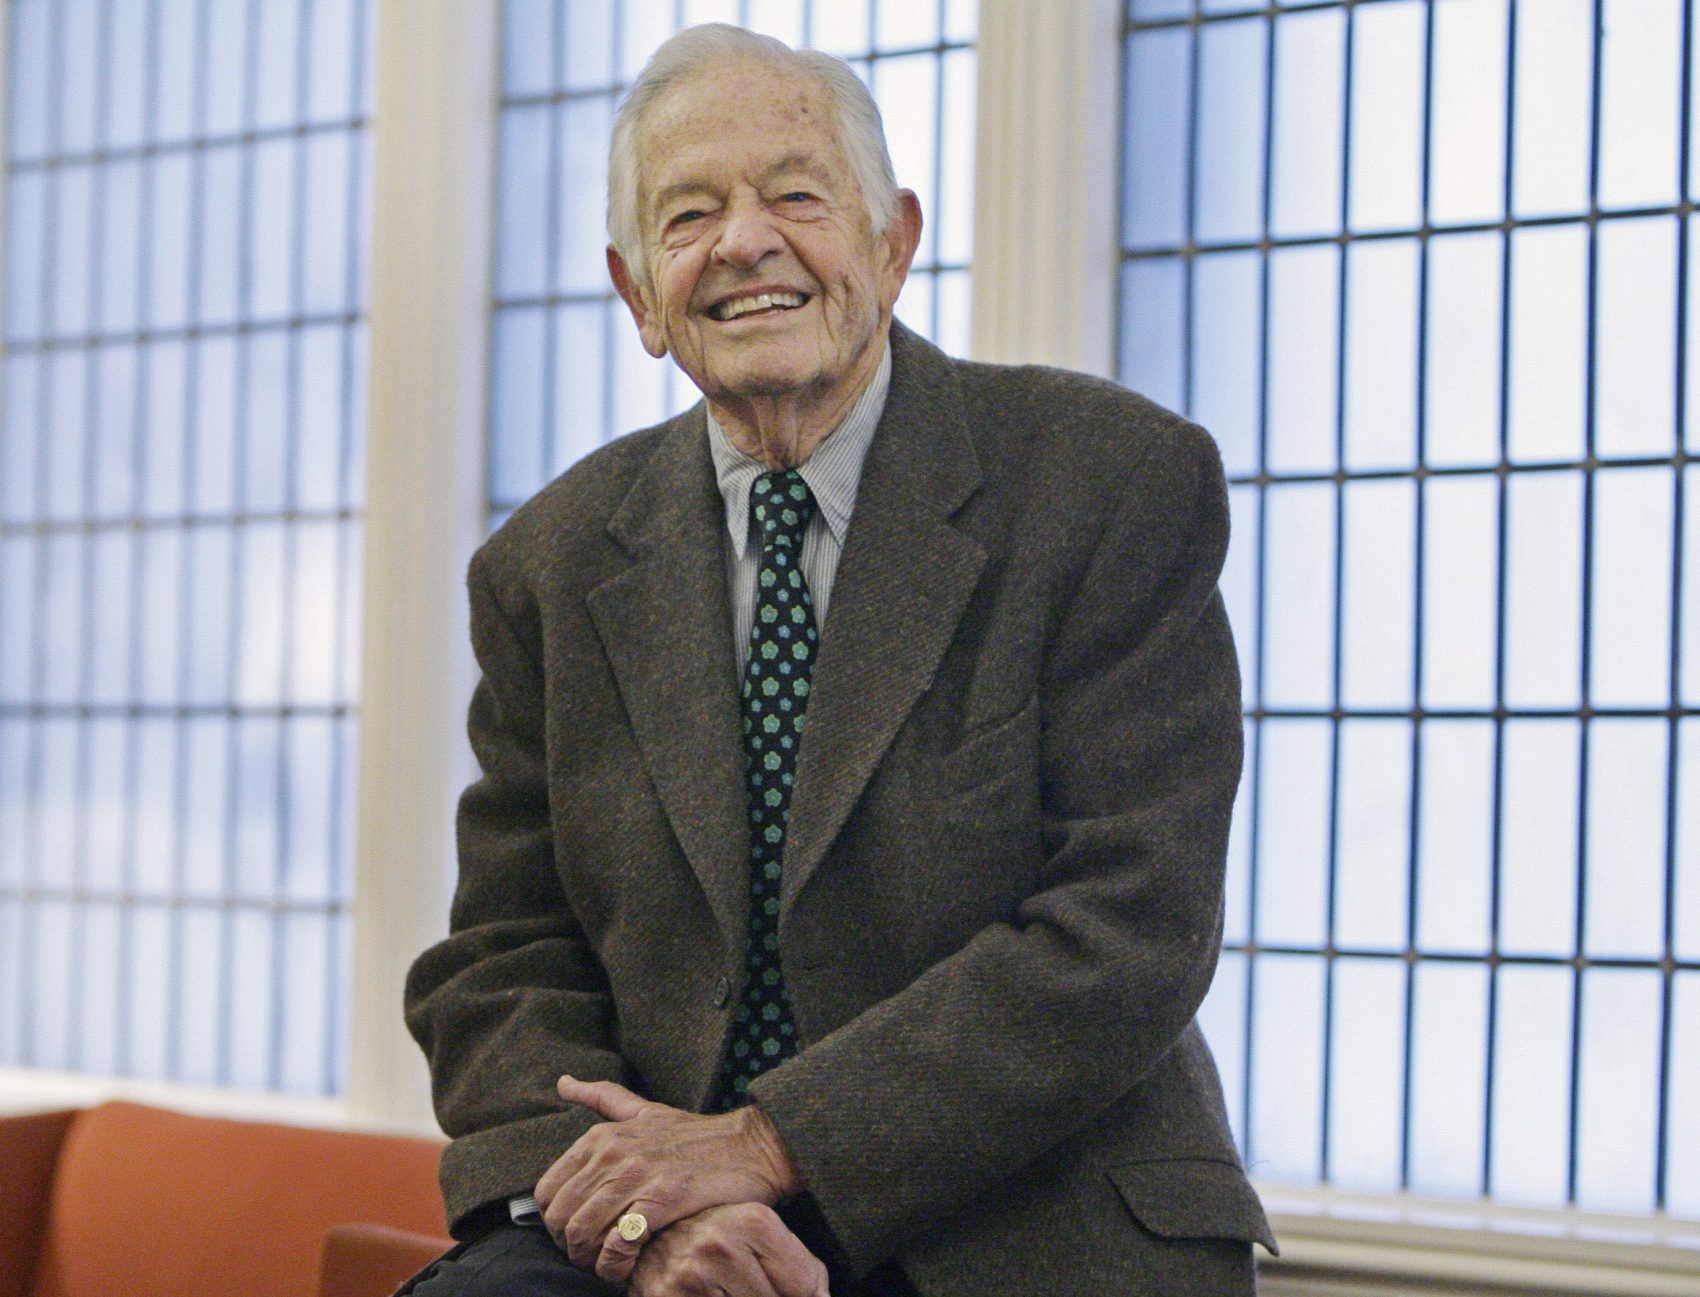 Renowned pediatrician Dr. T. Berry Brazelton smiles following an interview at the University Club in Chicago on Nov. 6, 2006. (M. Spencer Green/AP)